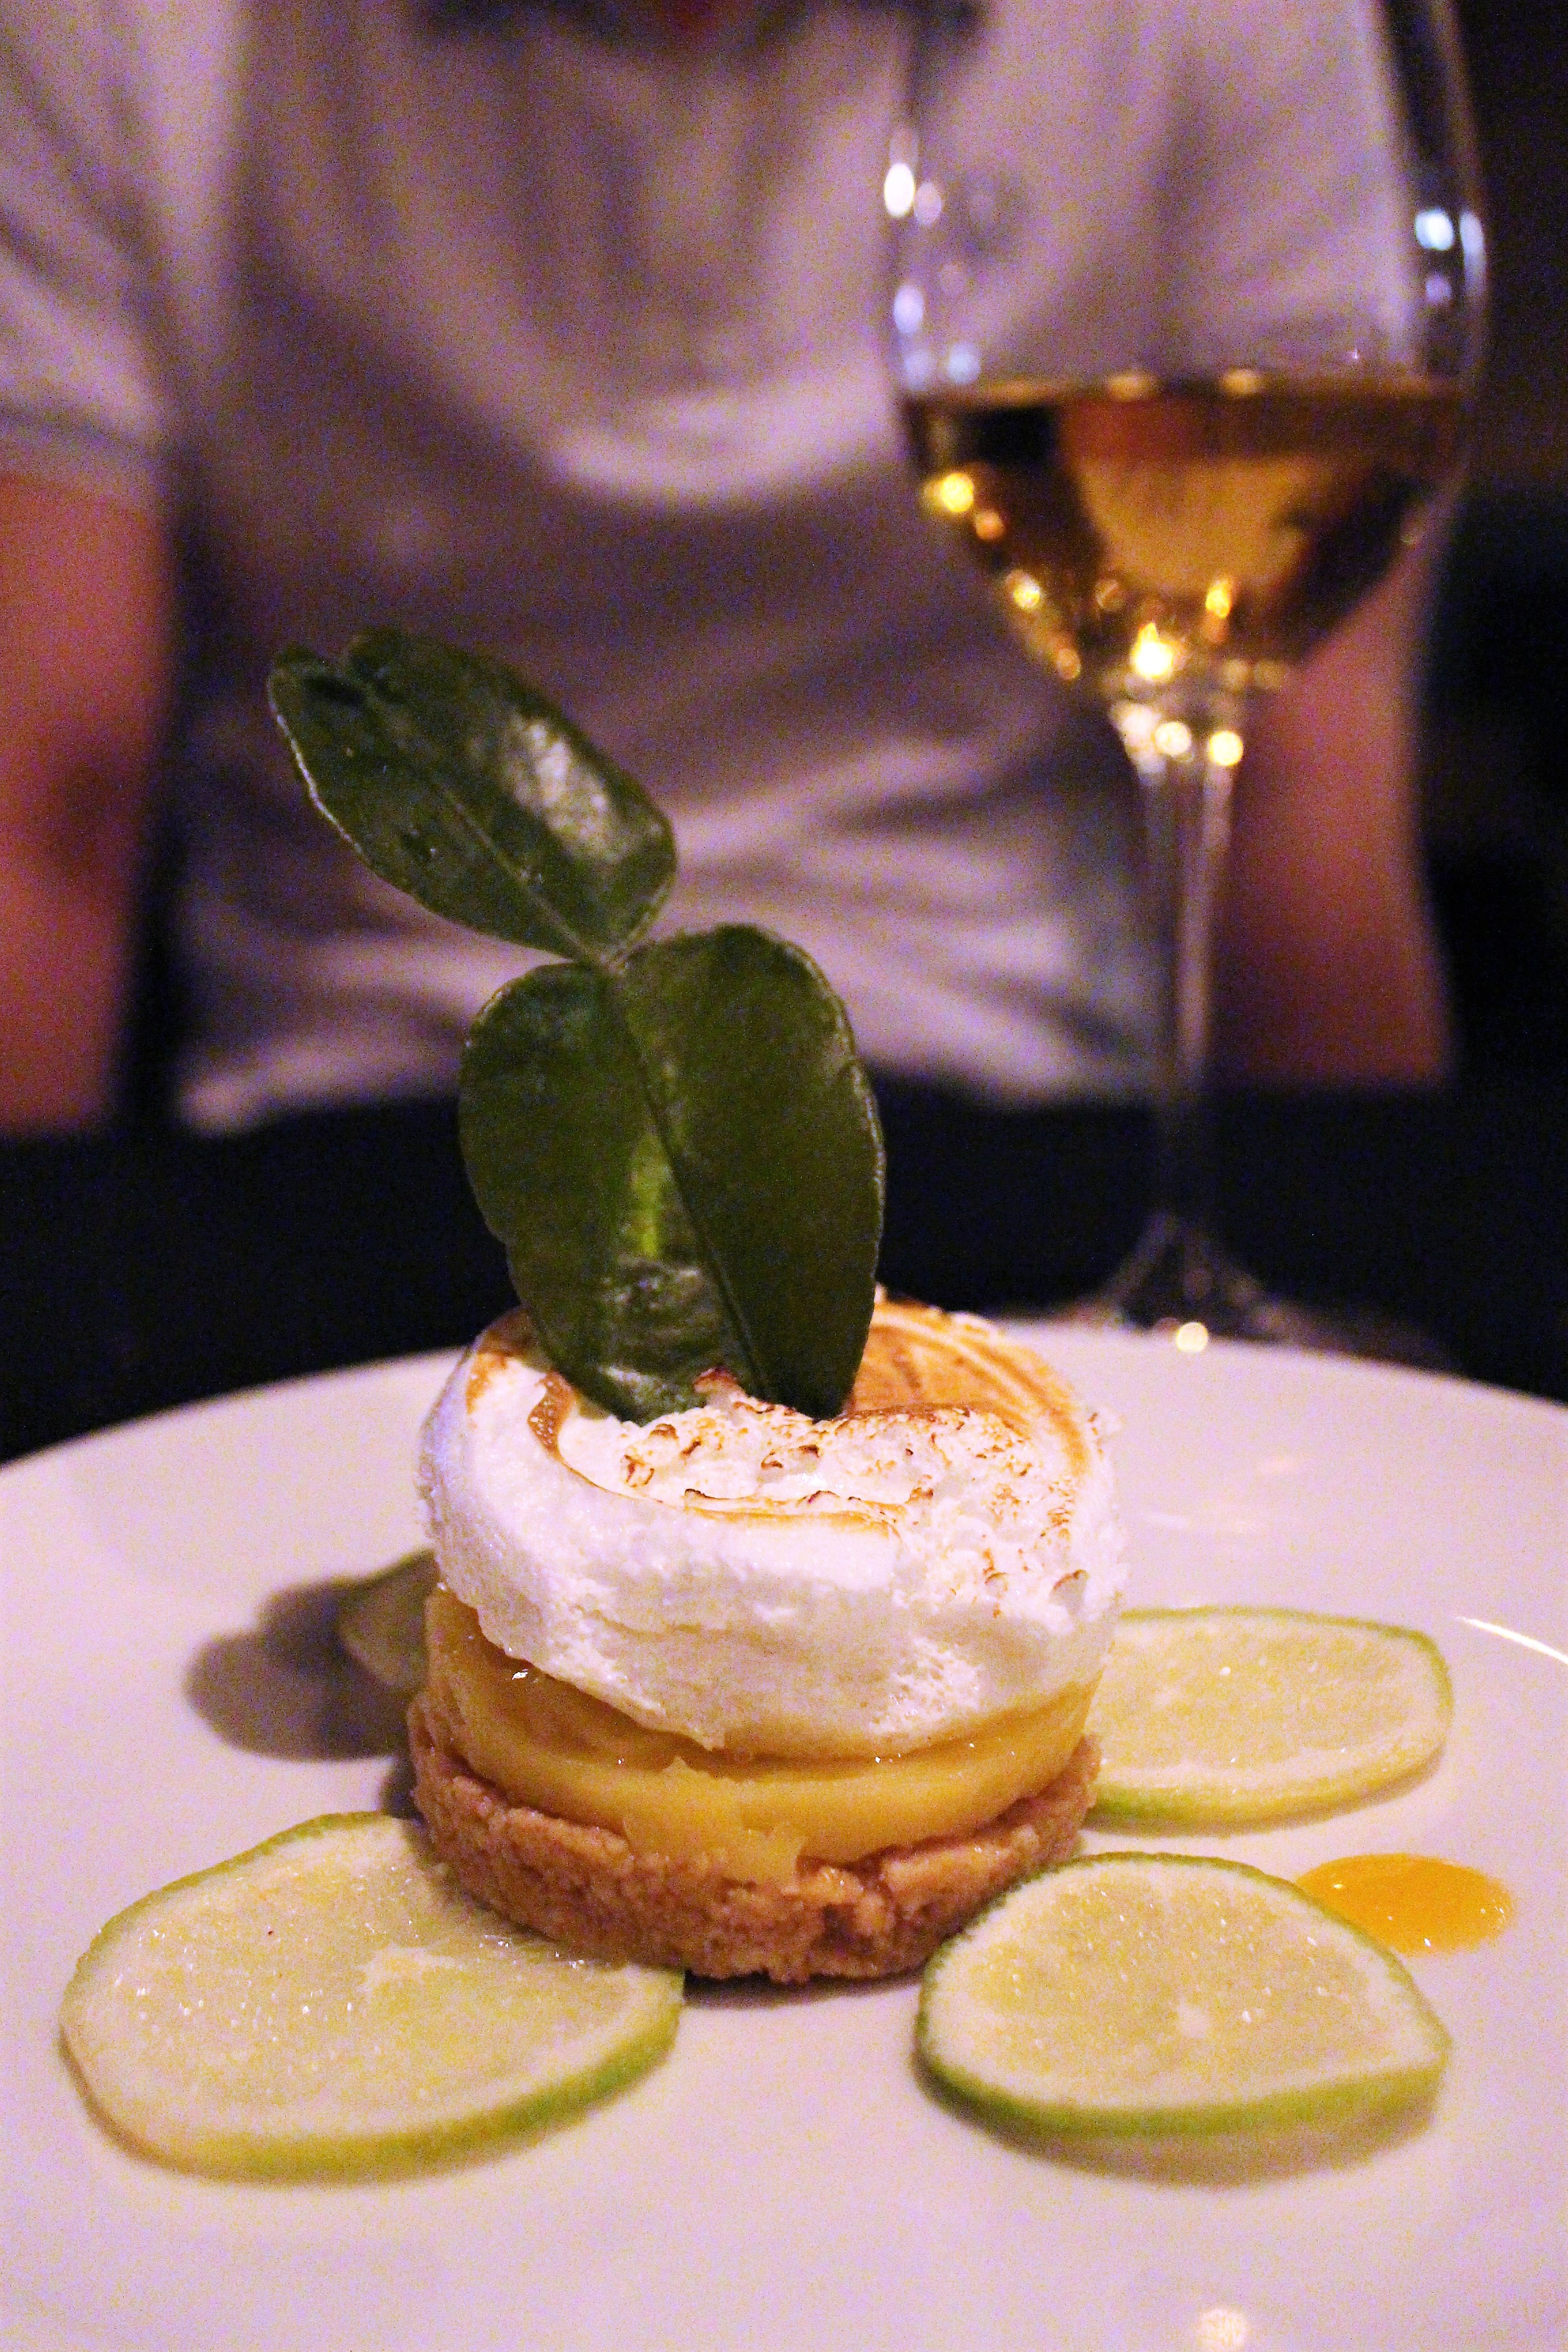 Cheesecake with Mango at Eldiset in Barcelona